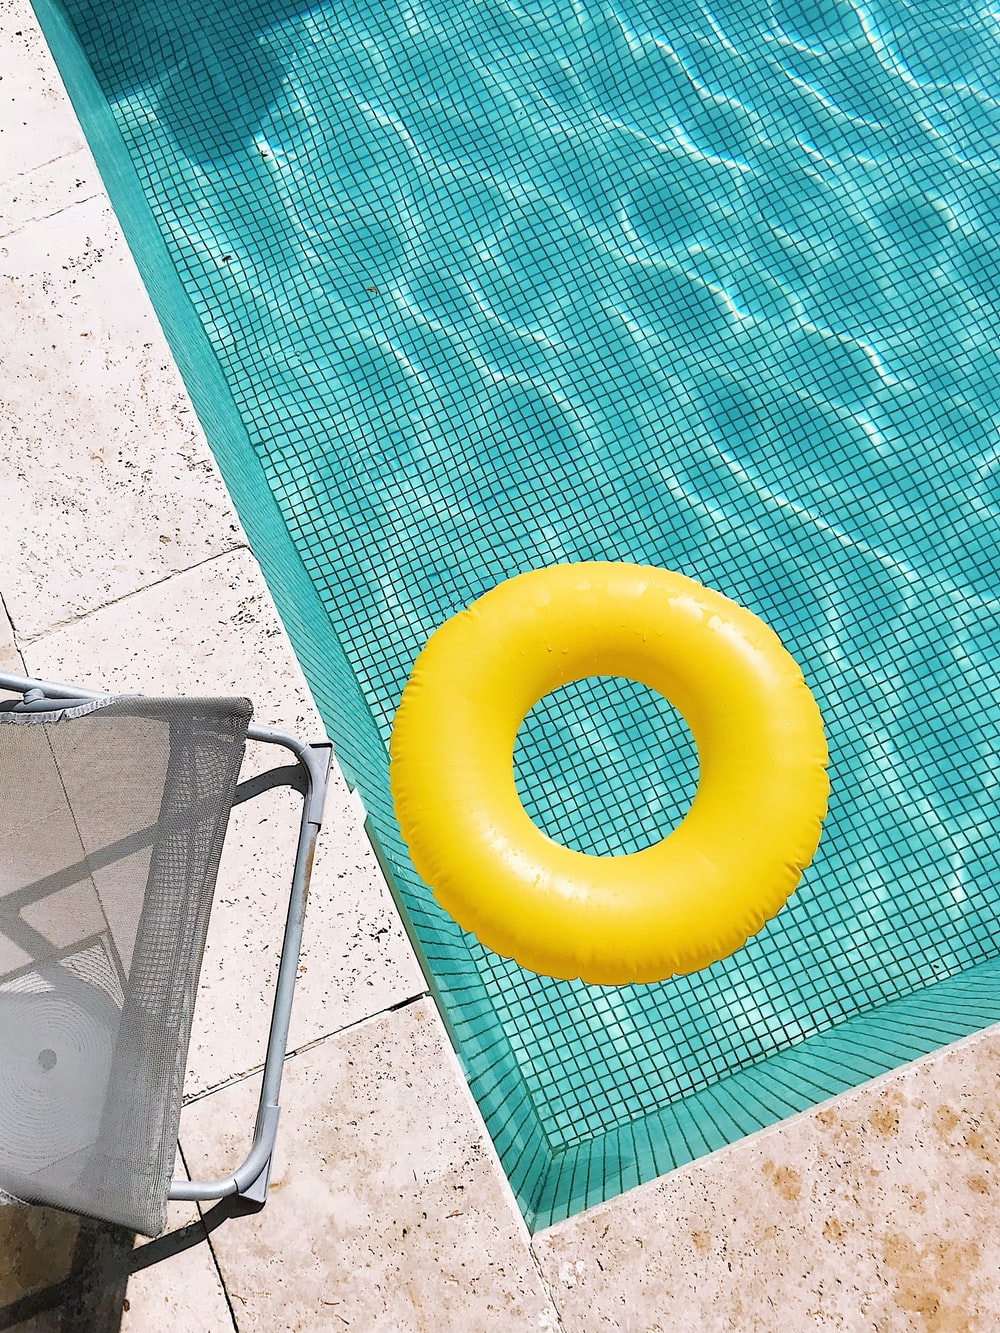 yellow plastic round toy on green table